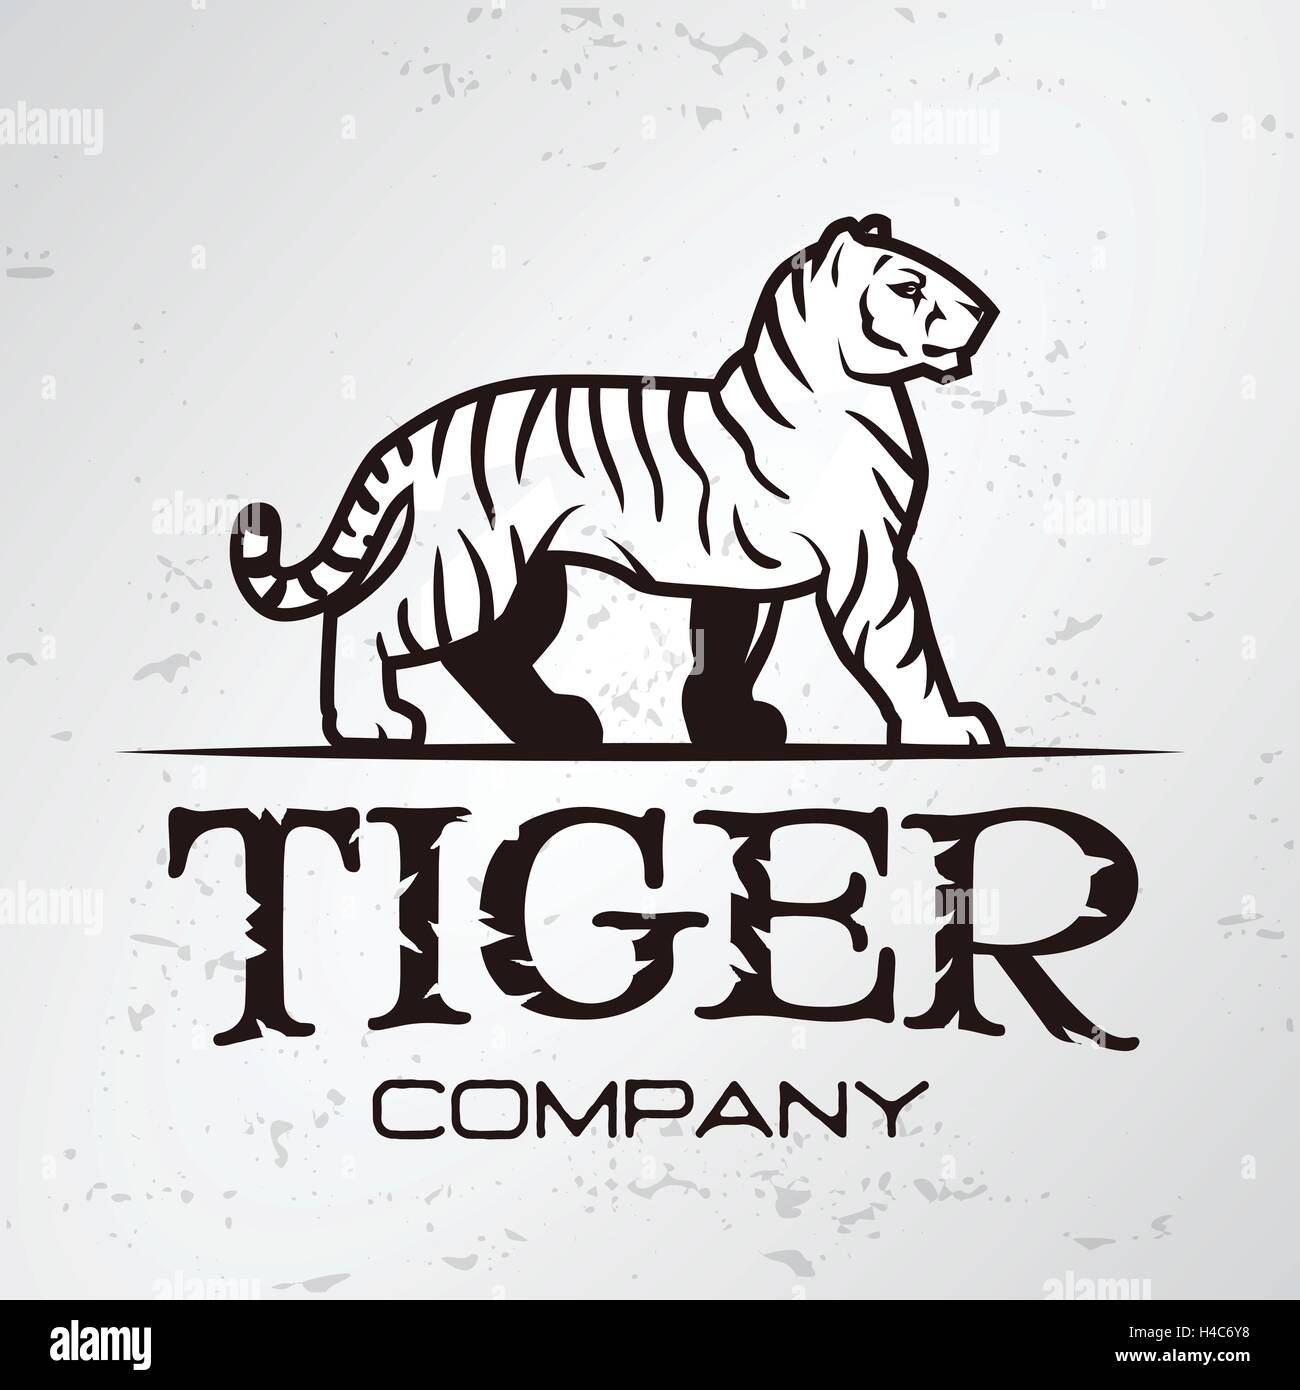 Tiger logo emblem template brand mascot symbol for business or tiger logo emblem template brand mascot symbol for business or shirt vector vintage design element biocorpaavc